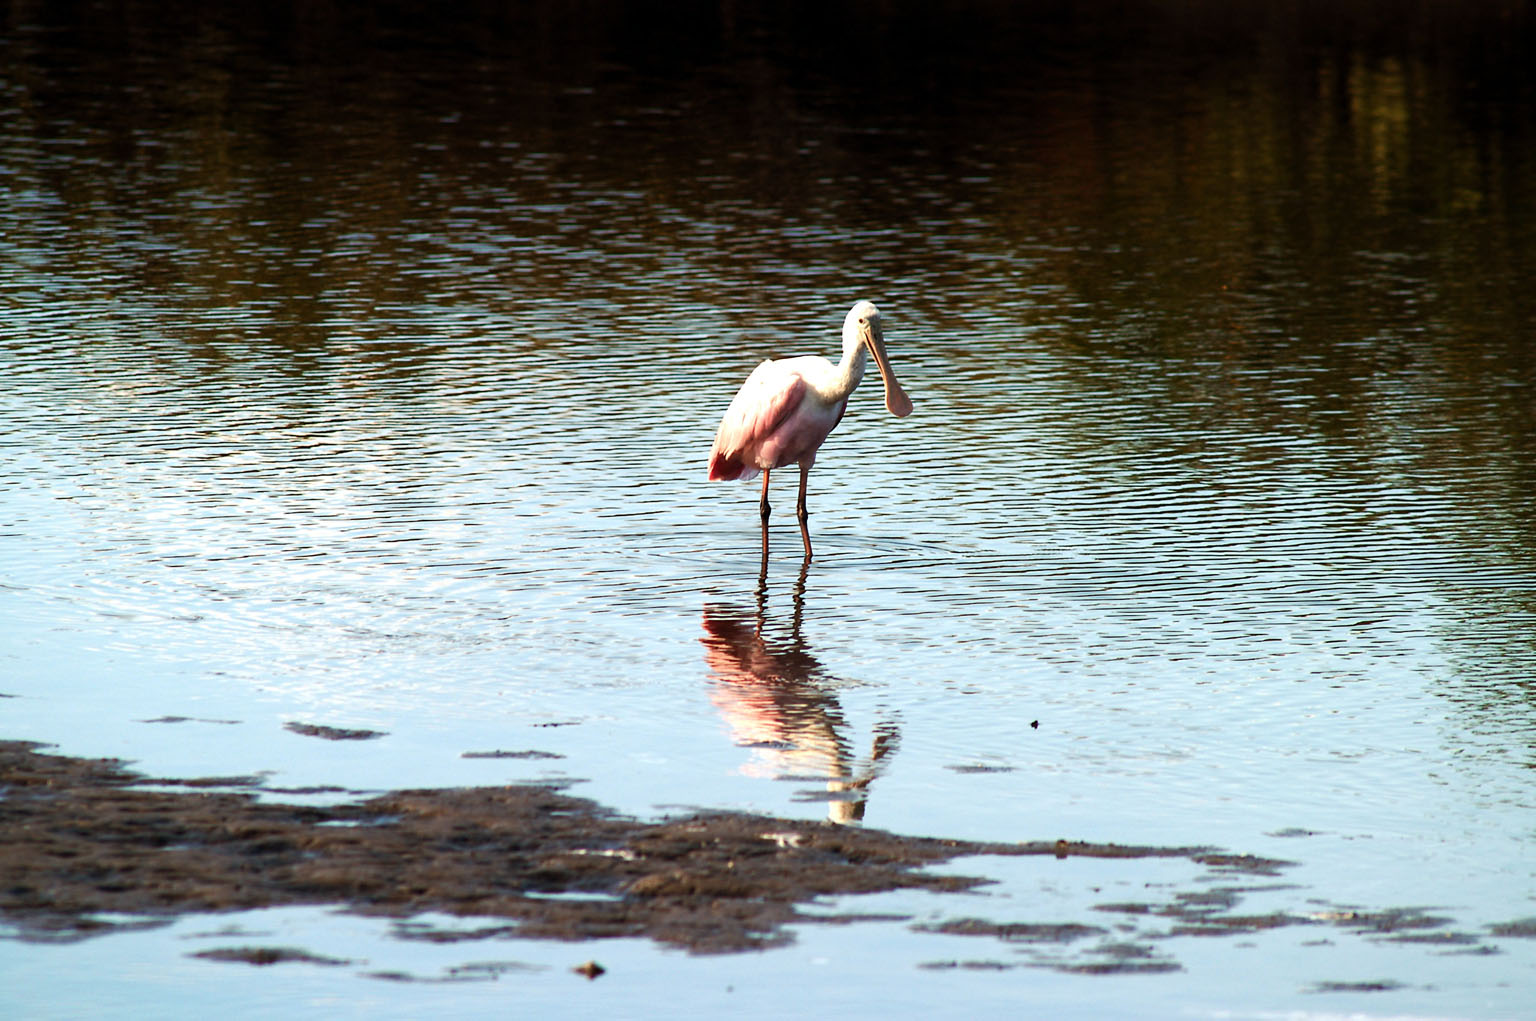 KENNEDY SPACE CENTER, FLA. -- A roseate spoonbill contemplates its reflection in the water near KSC. Spoonbills prefer to inhabit mangroves, ranging from the coasts of southern Florida, Louisiana and Texas, to the West Indies, Mexico, Central and South America. They feed on shrimps and fish in shallow waters. Spoonbills are one of 310 species of birds that inhabit the Merritt Island National Wildlife Refuge, which shares a boundary with KSC. The marshes and open water of the refuge also provide wintering areas for 23 species of migratory waterfowl, as well as a year-round home for great blue herons, great egrets, wood storks, cormorants, brown pelicans and other species of marsh and shore birds.